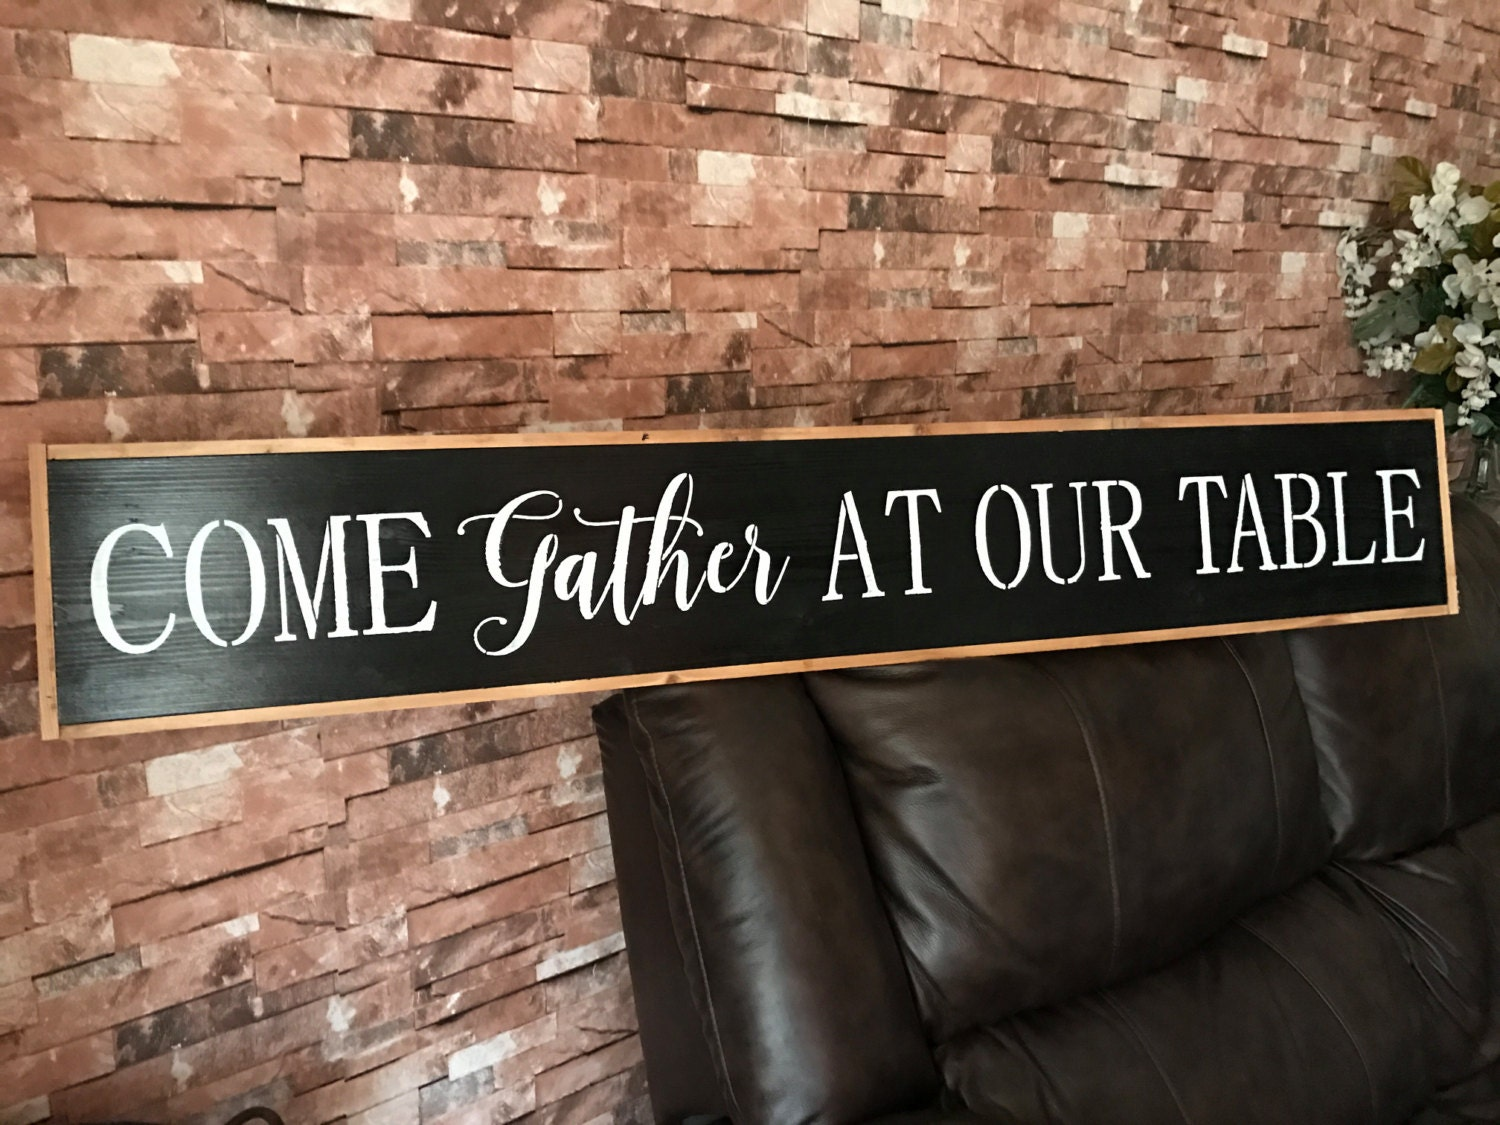 Fixer upper kitchen wall art - Come Gather At Our Table Rustic Fixer Upper Style Farmhouse Black Framed Wood Style Kitchen Dinning Room Wall Art Home Decor